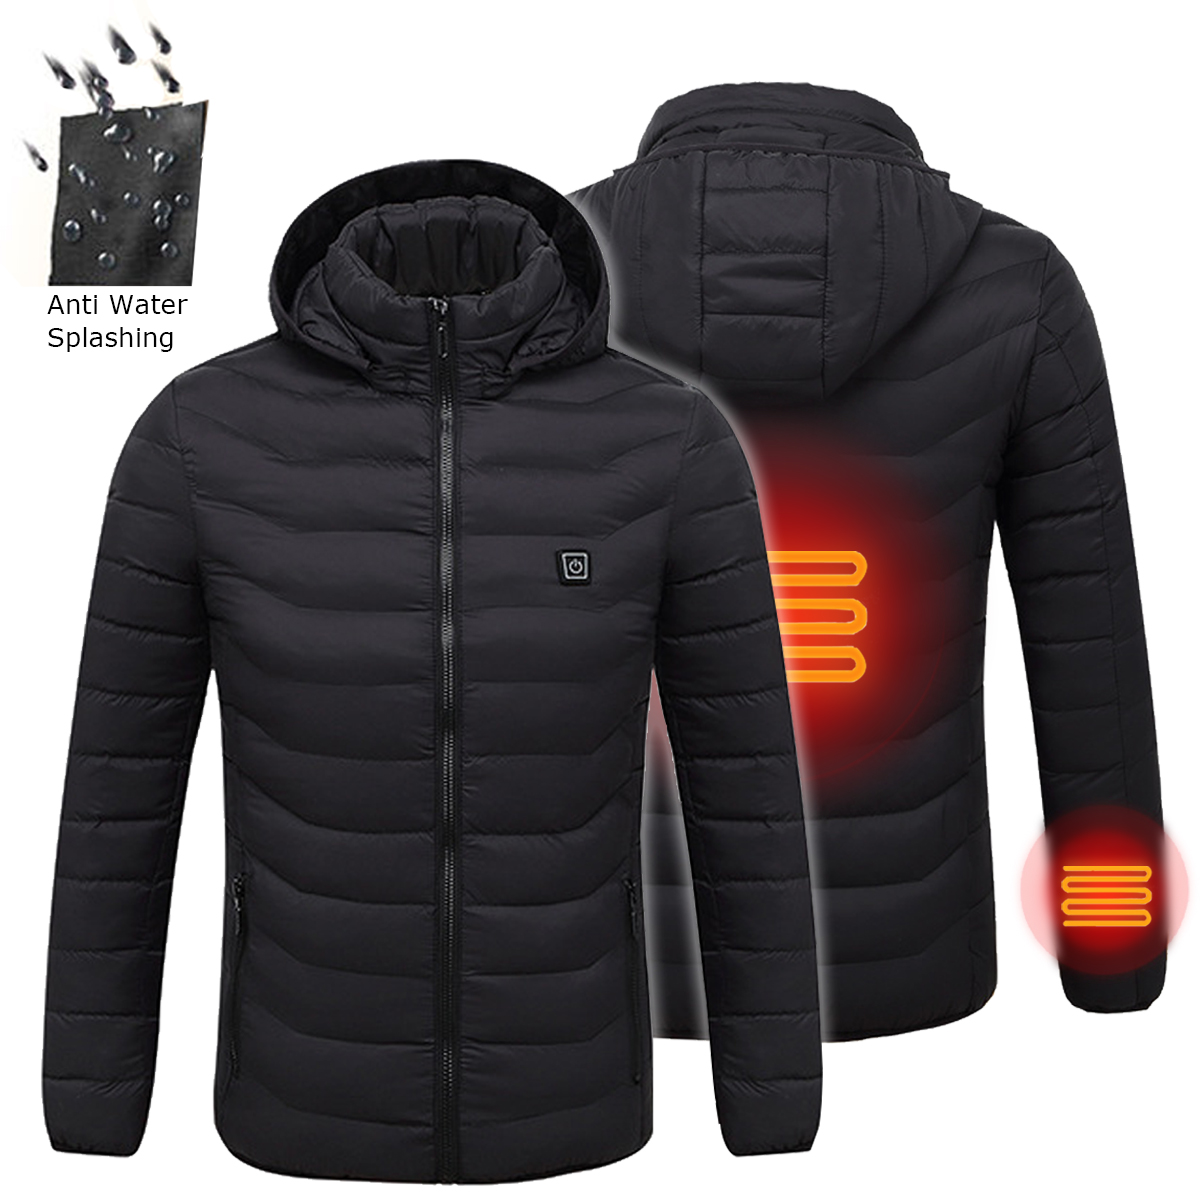 NEW Universal Winter Heated USB Hooded Work Jacket Coats Adjustable Temperature Control Safety Clothing